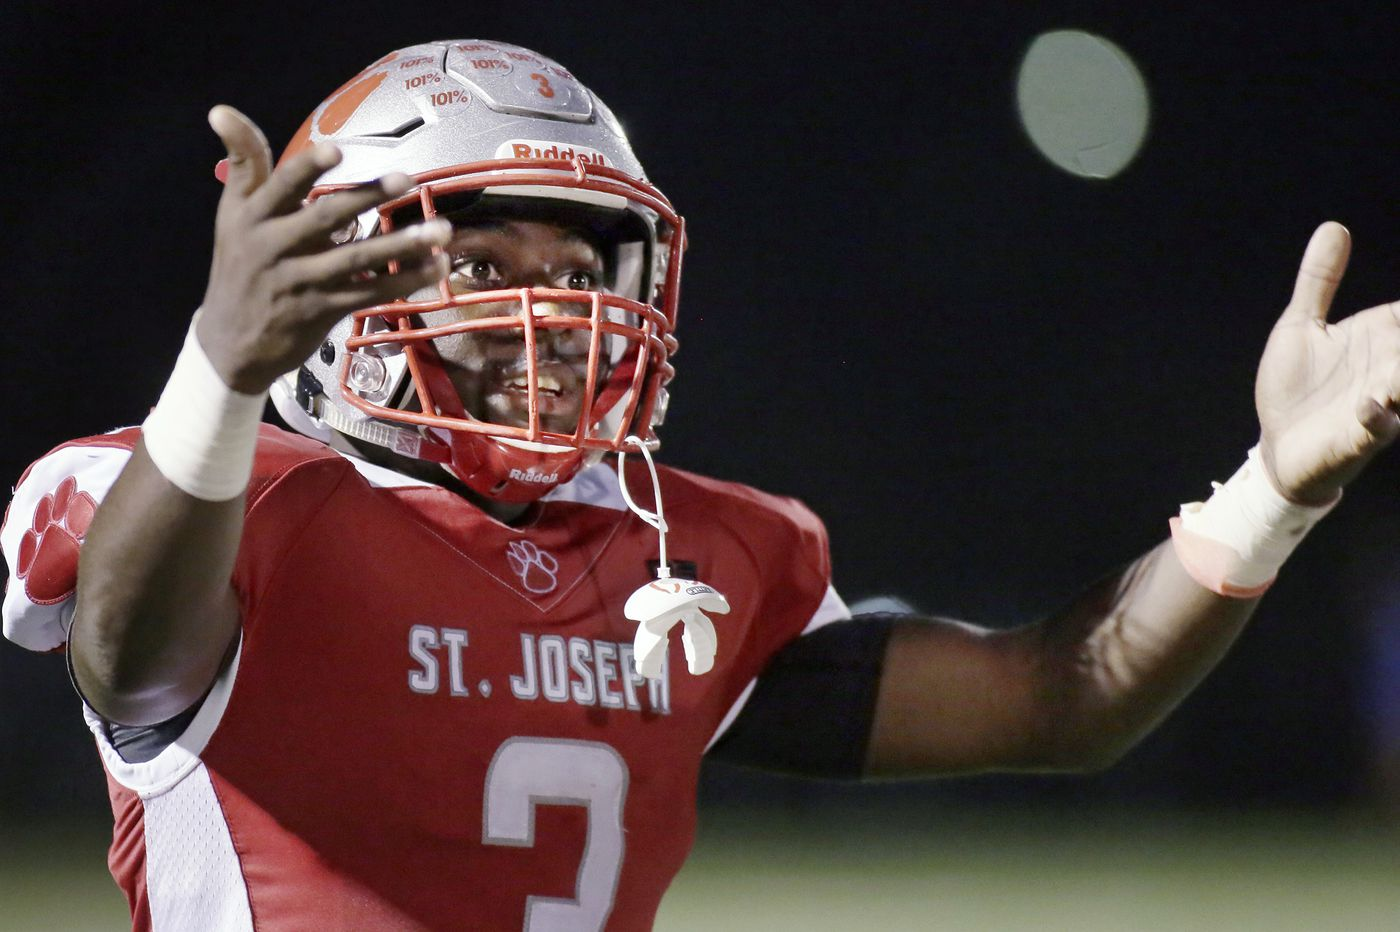 St. Joseph's Jada Byers is Inquirer's South Jersey football offensive player of the year